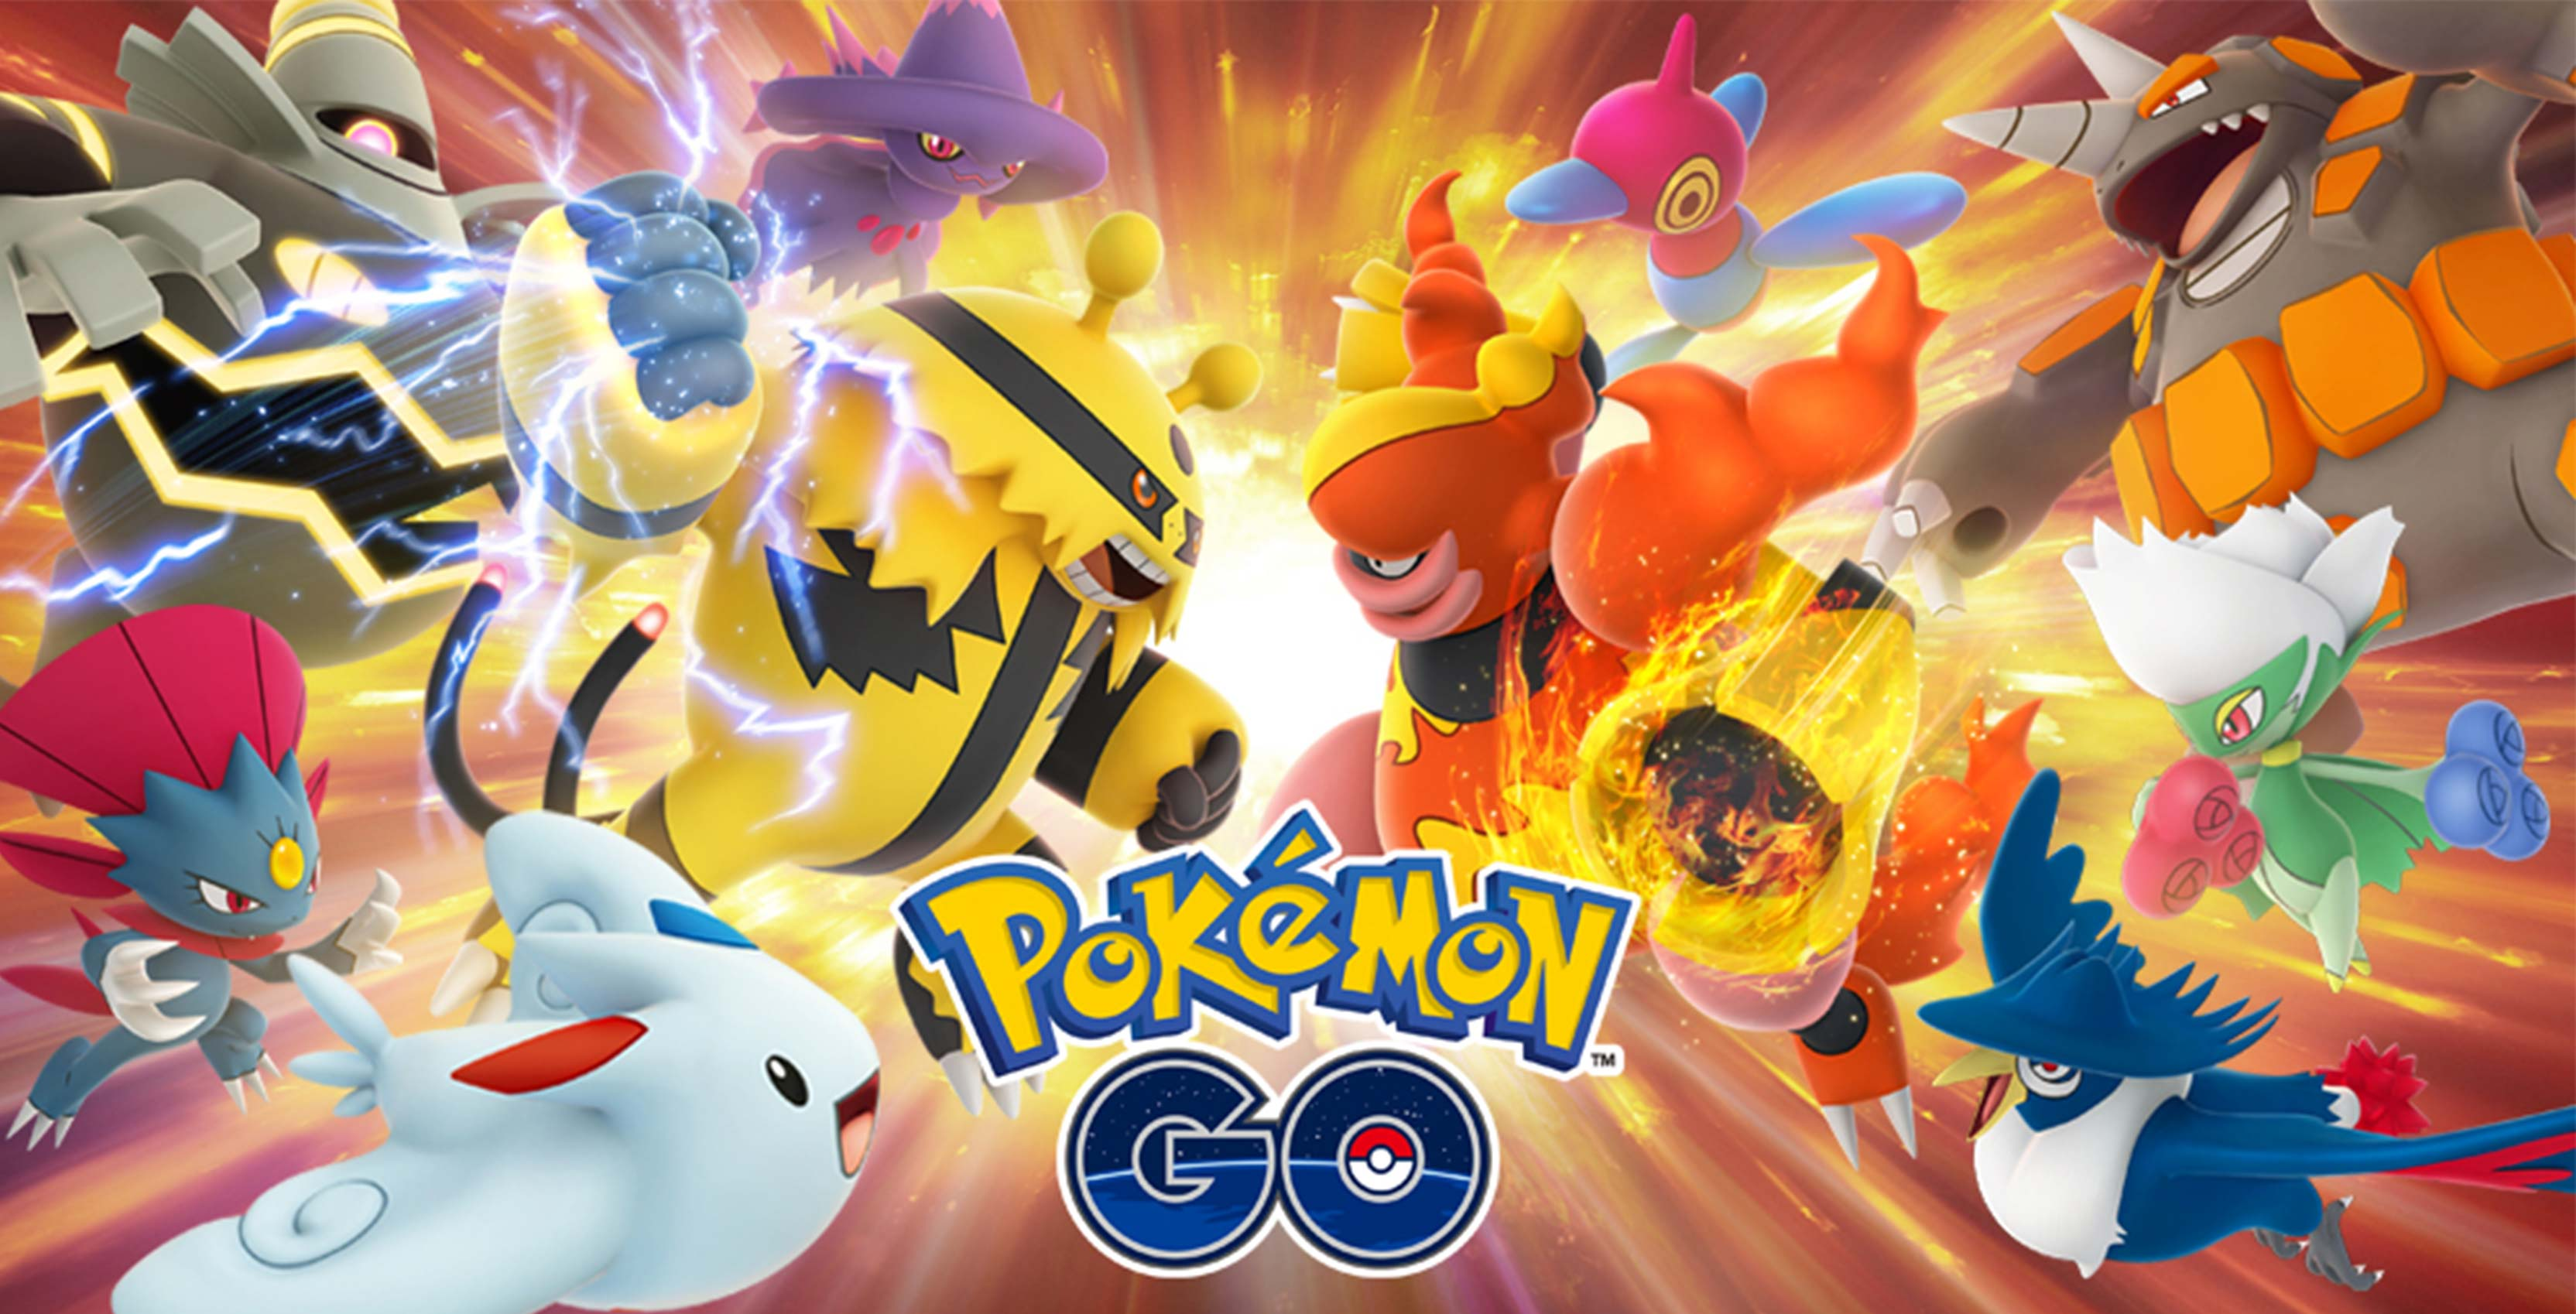 Pokemon GO trainer battles confirmed to arrive in December